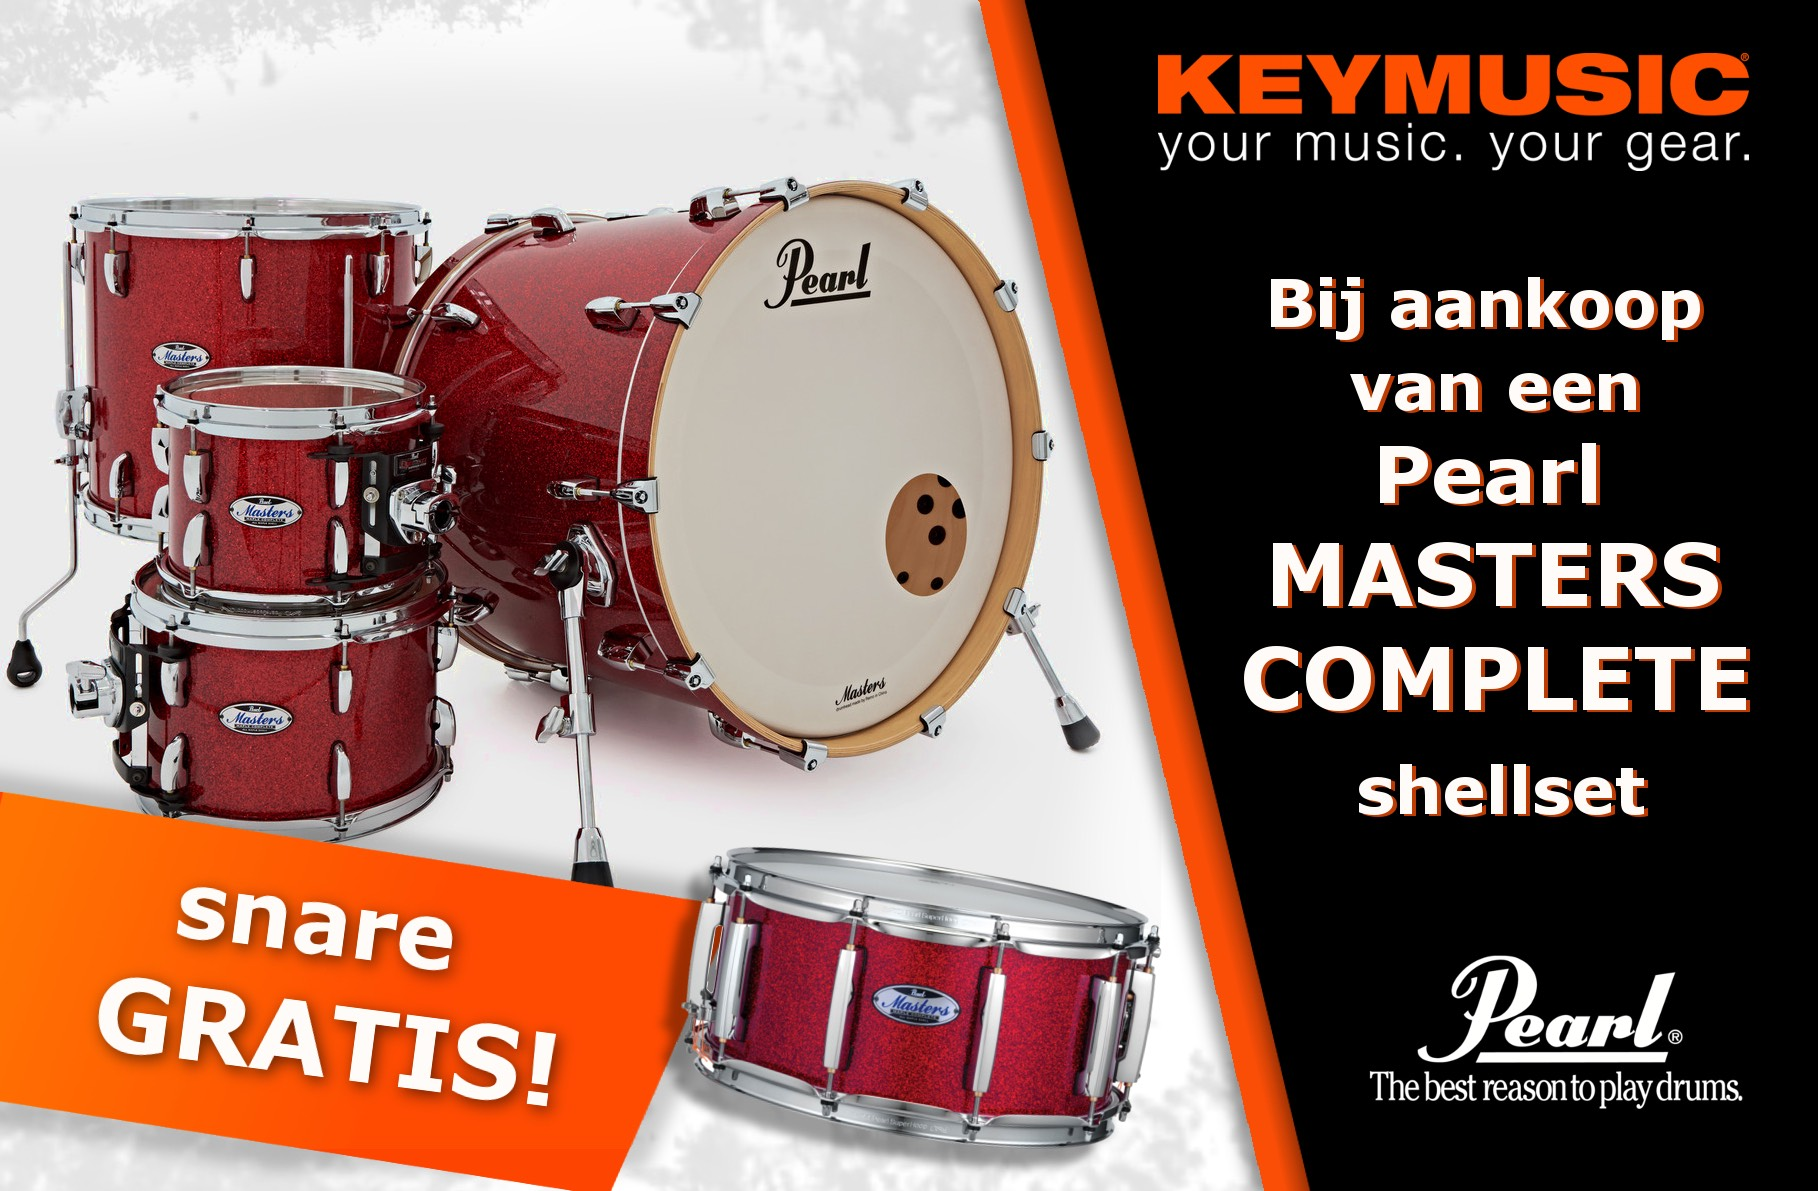 pearl masters complete actie